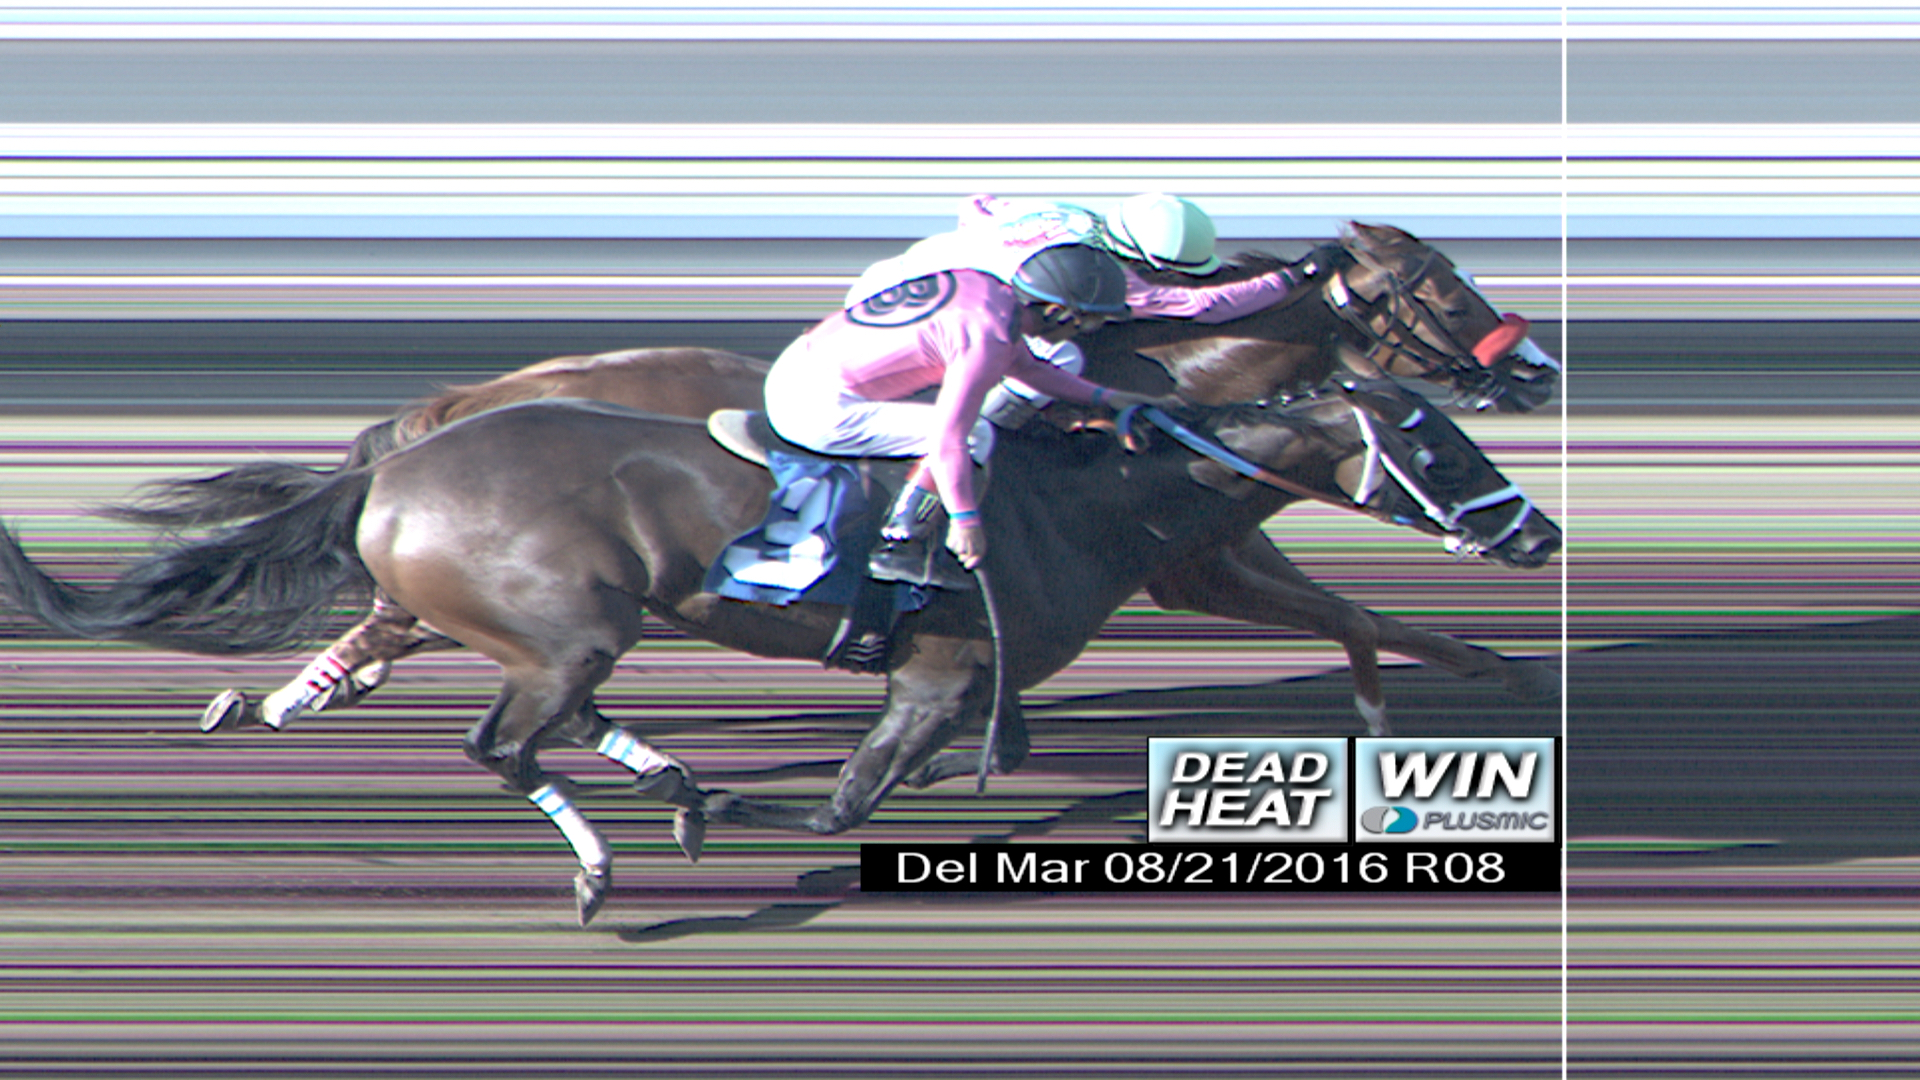 Dead-heat horse racing betting software non sports betting odds